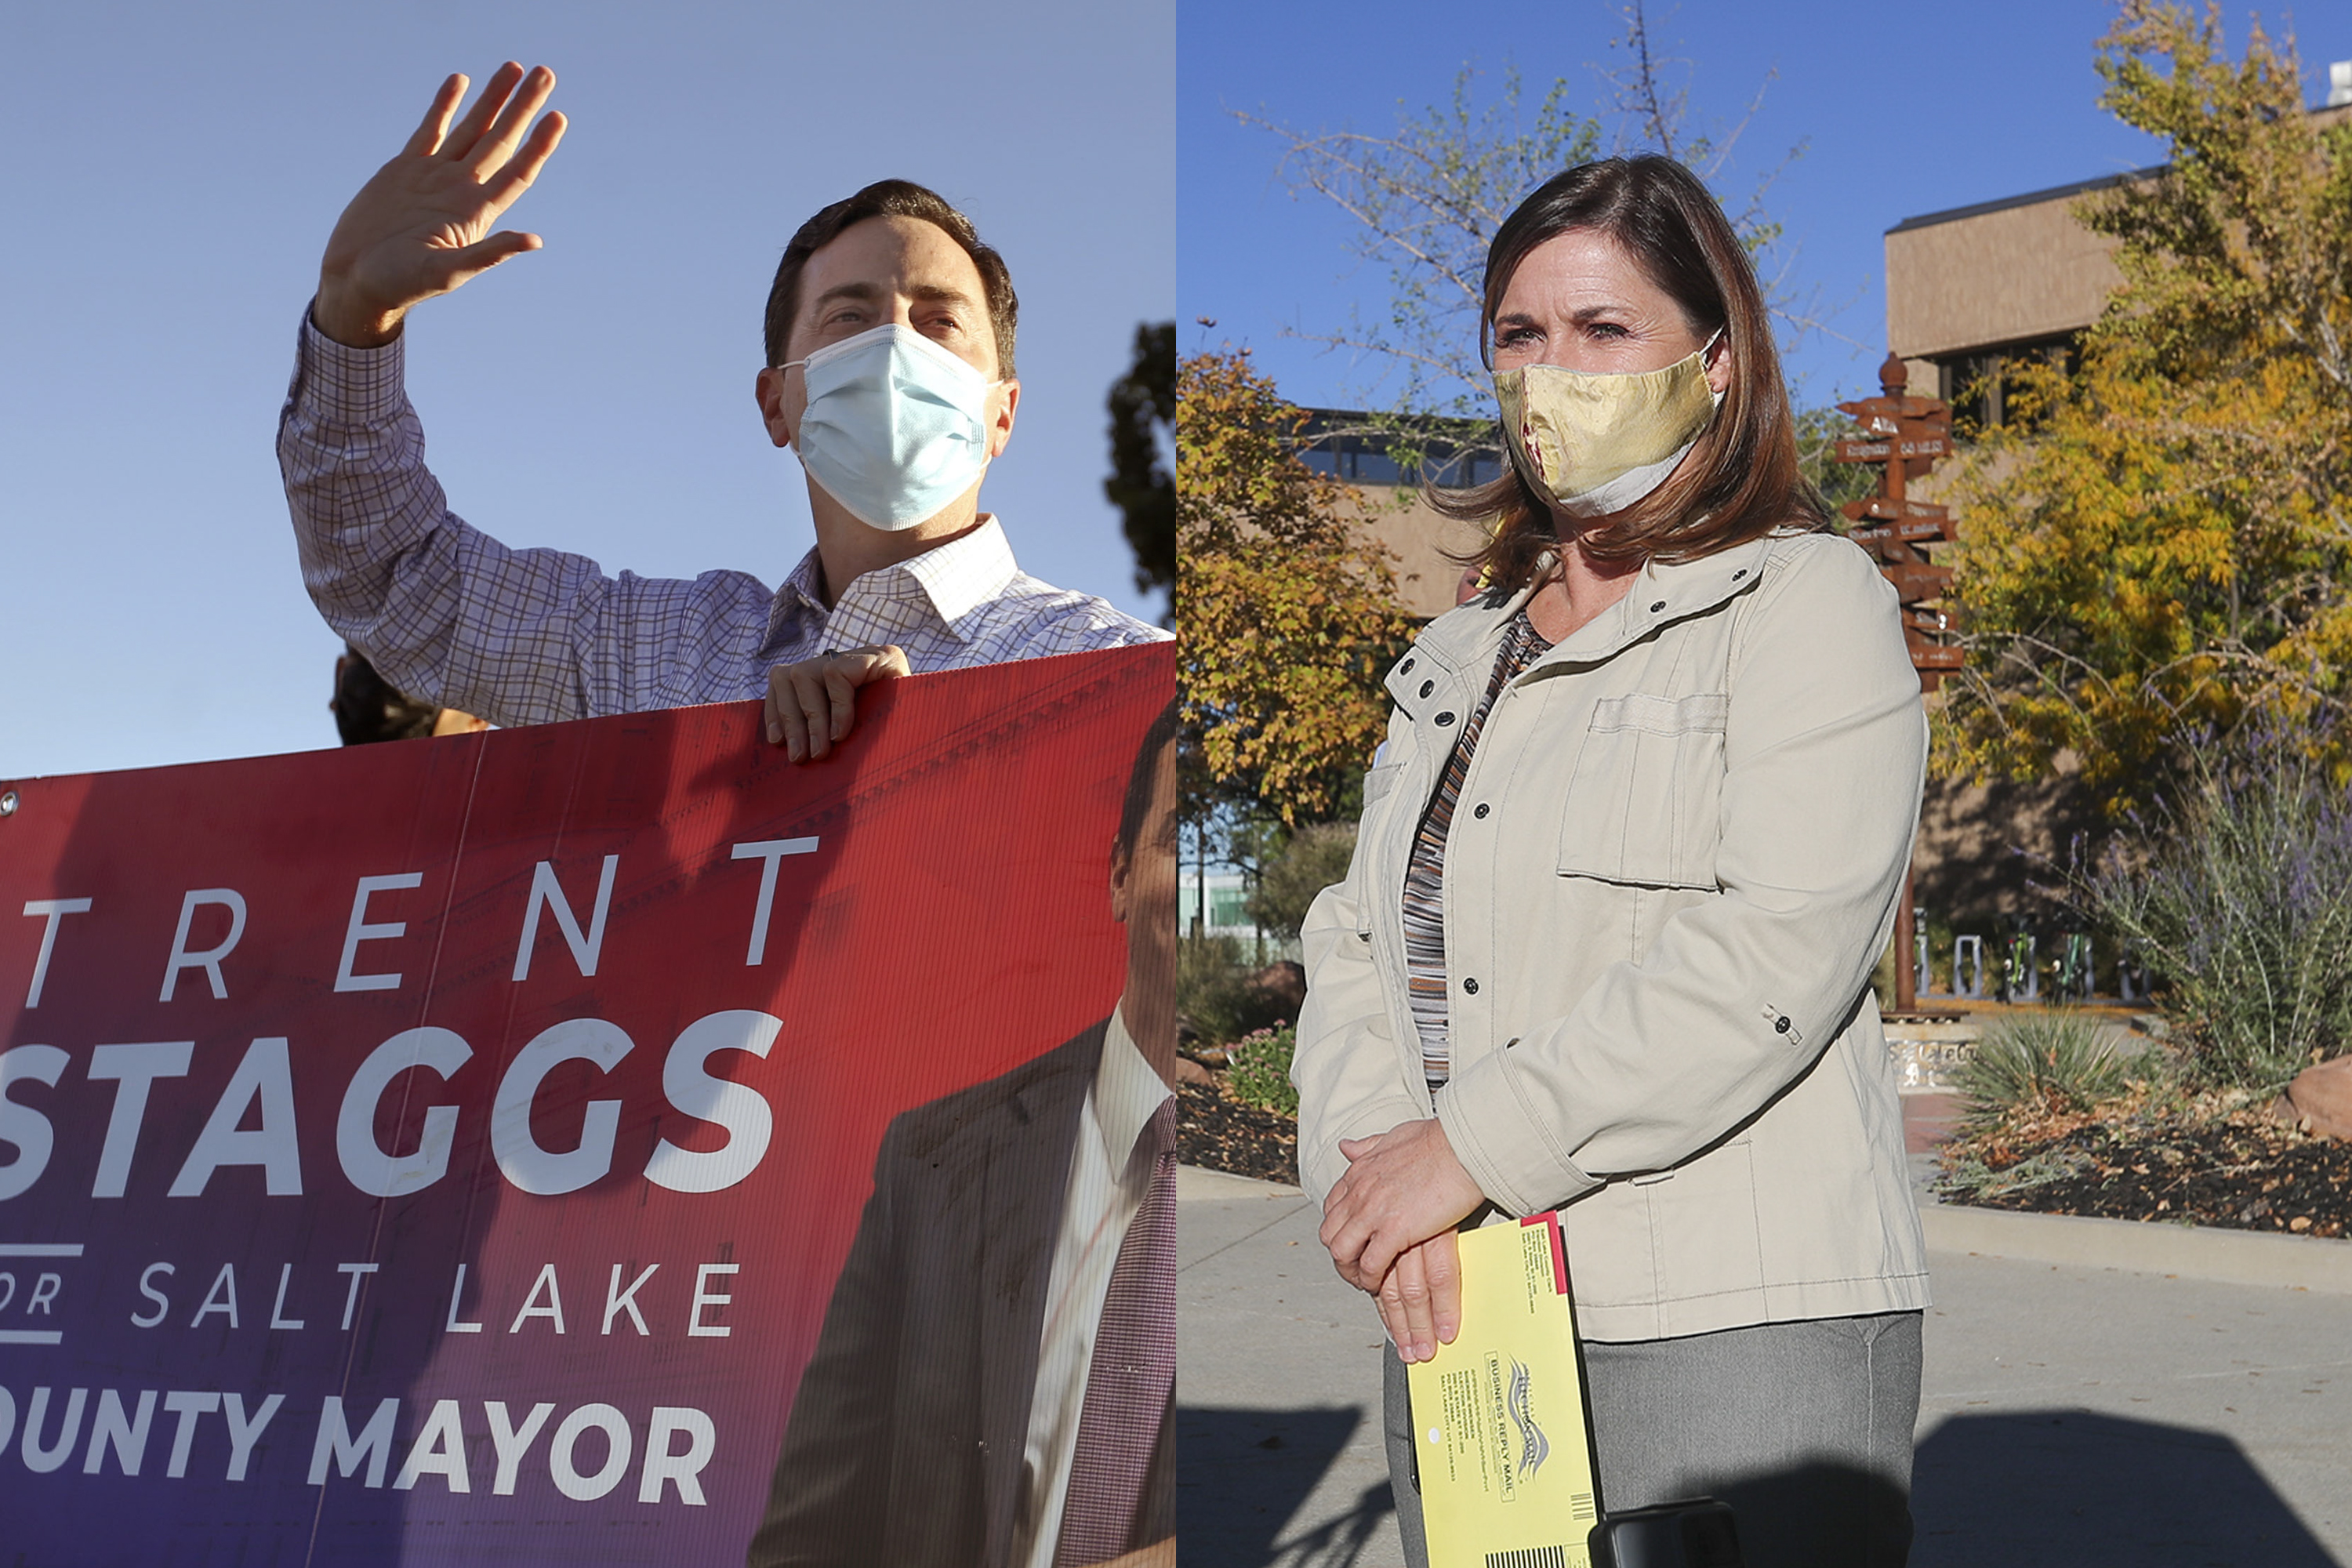 In this composite image, Republican candidate for Salt Lake County Mayor Trent Staggs, left, who is the current mayor of Riverton, waves at passersby in Taylorsville on Friday, Oct. 16, 2020. At right, Salt Lake County Mayor Jenny Wilson, a Democrat, makes a short speech before placing her ballots into an official ballot drop box at the county offices in Salt Lake City on Friday, Oct. 16, 2020.